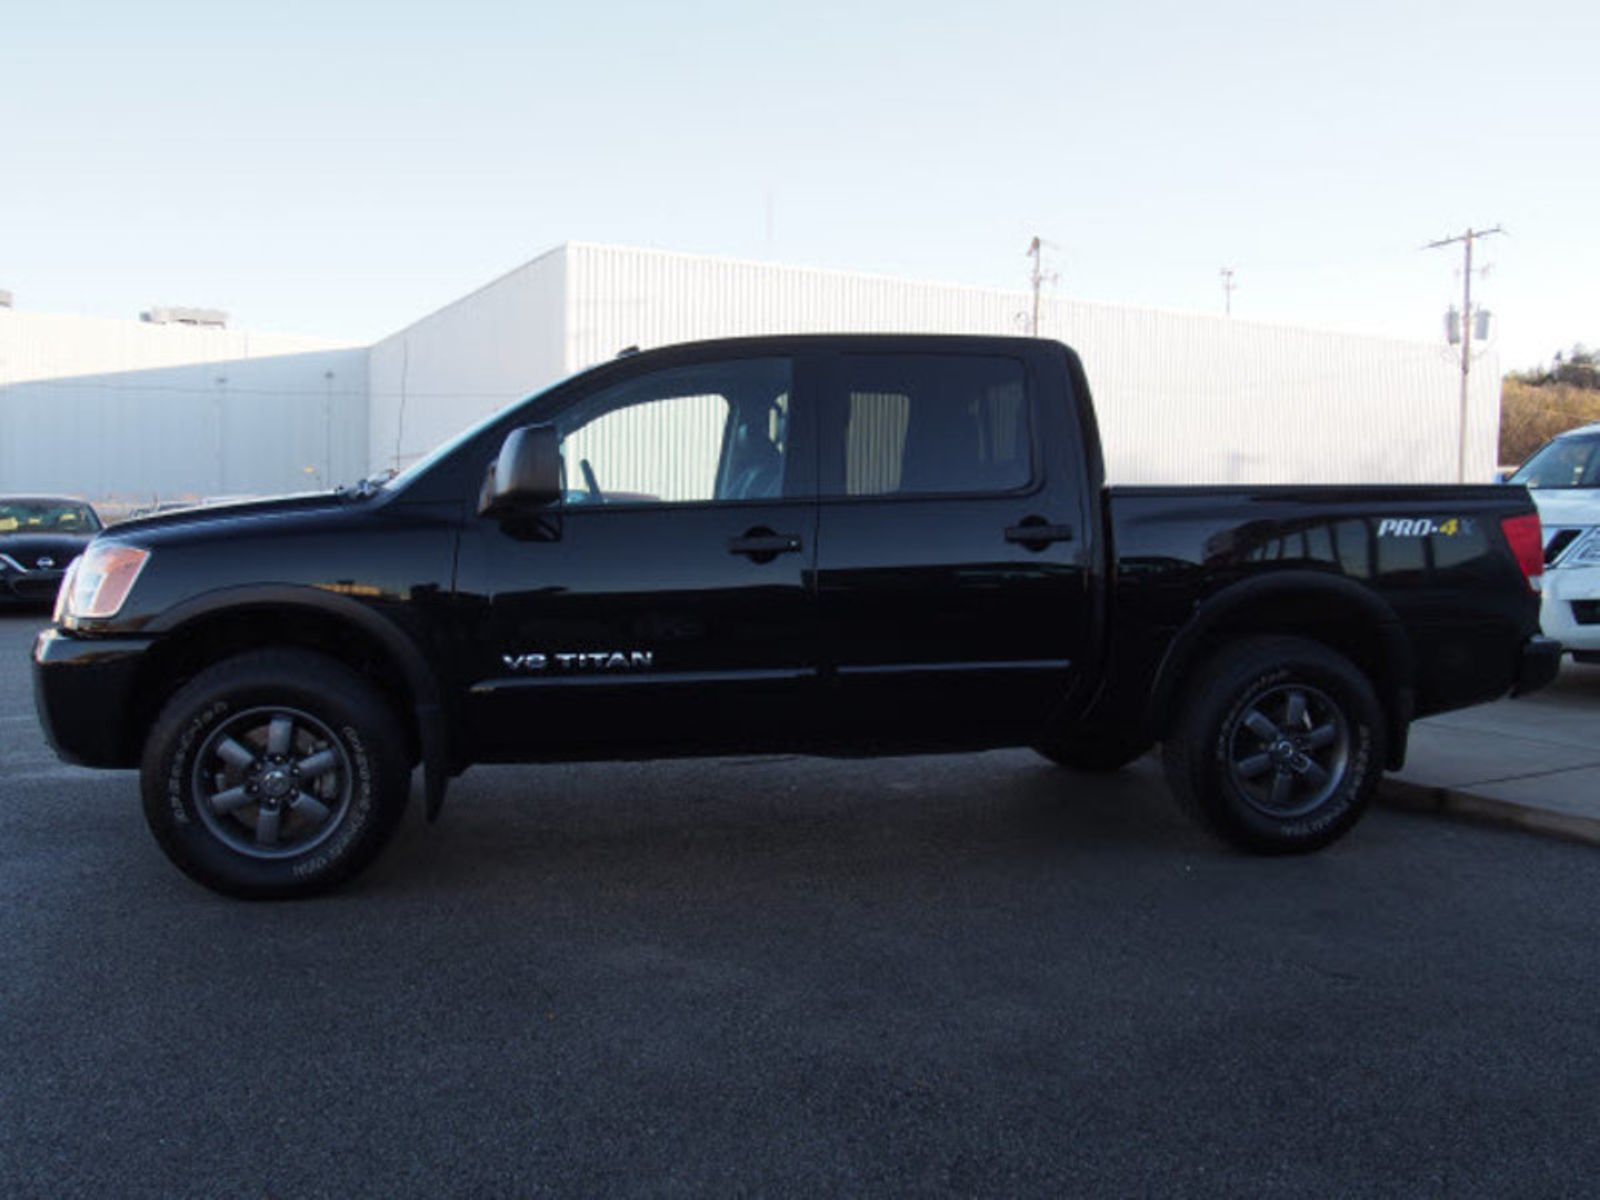 regina models current nissan knight titan slider swift